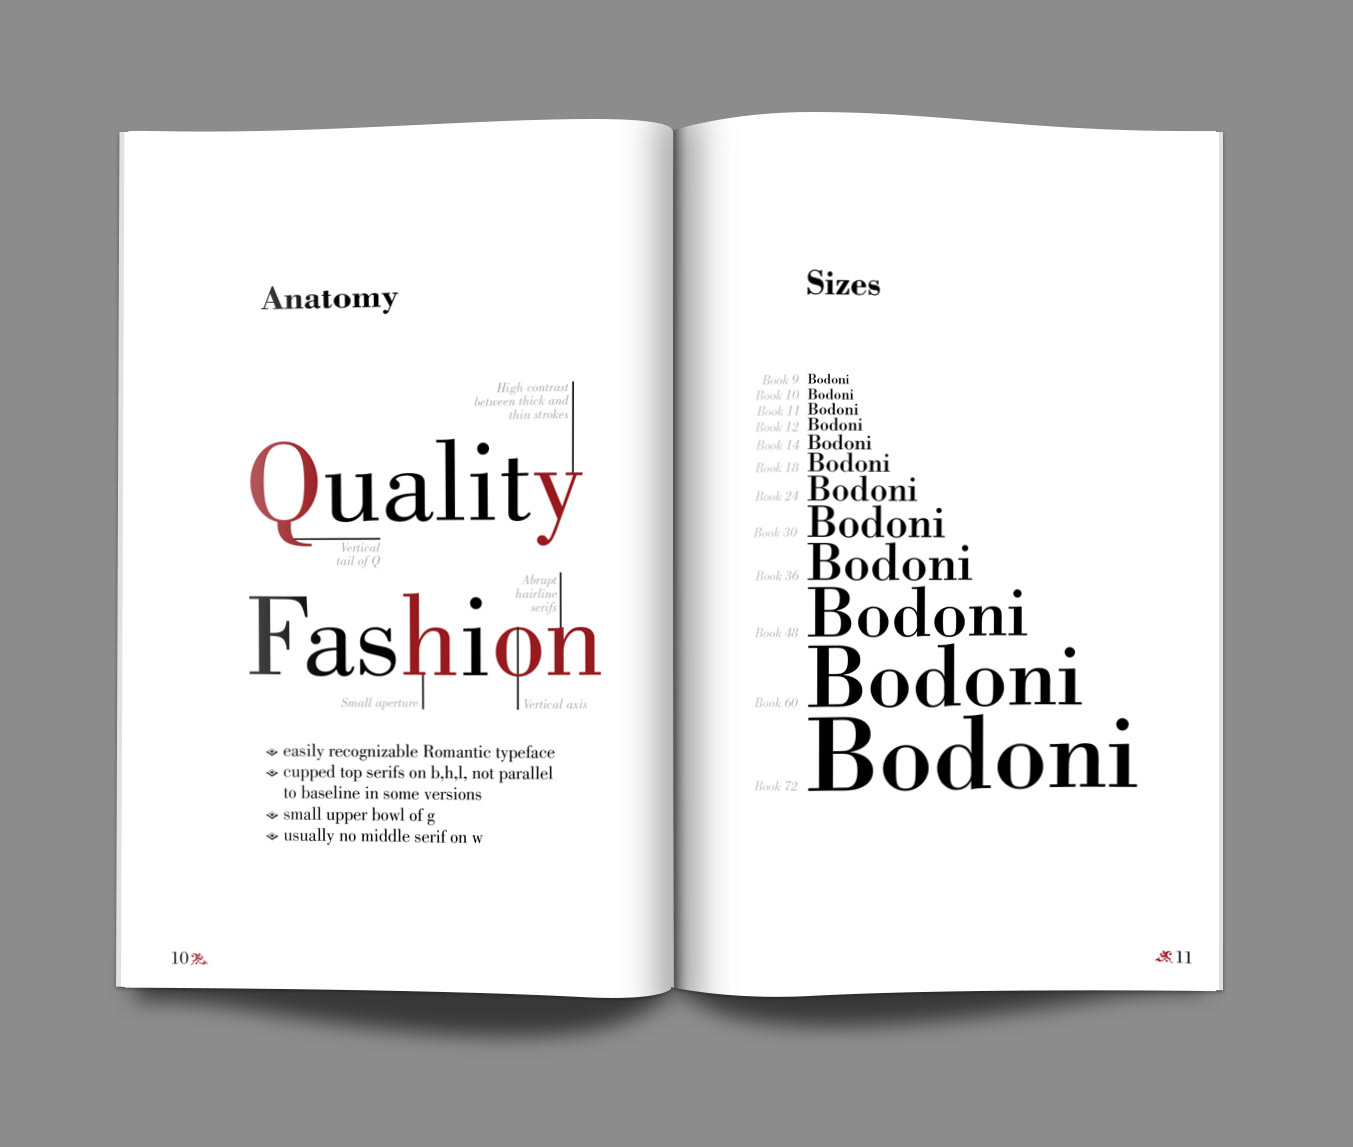 As It Is Commonly Used A Masthead For Fashion Magazines I Designed The Book To Have Theme